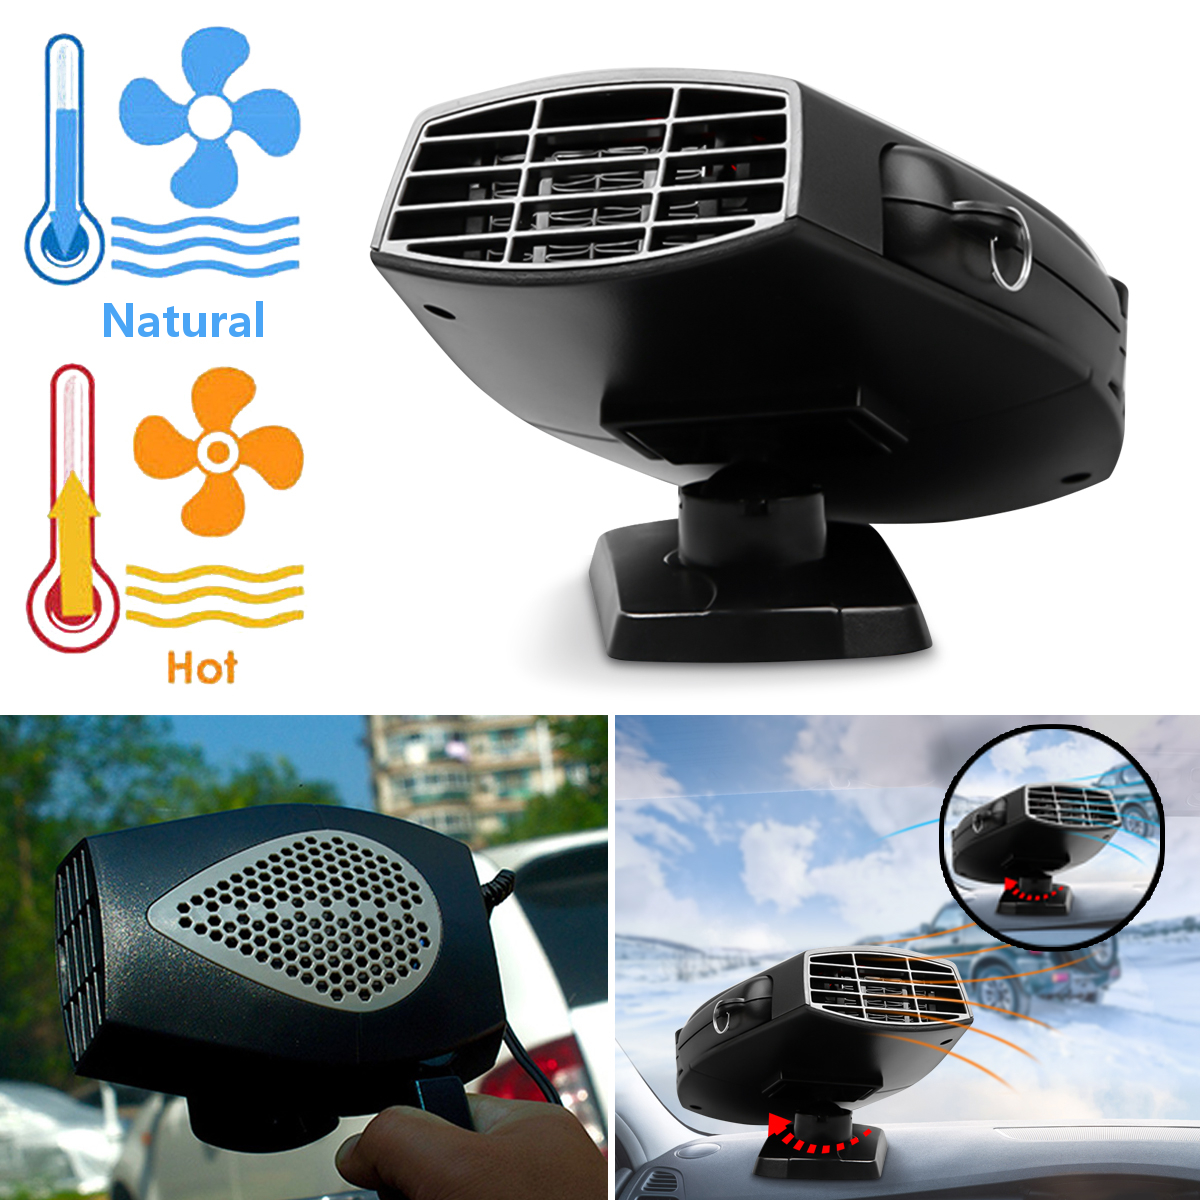 150W 12V Portable Car Truck Vehicle Electric Air Fan Auto Heater Heating Fan Car Windshield Windows Dryer Defroster Demister portable 150w ptc car vehicle heating heater hot fan defroster demister dc 12v